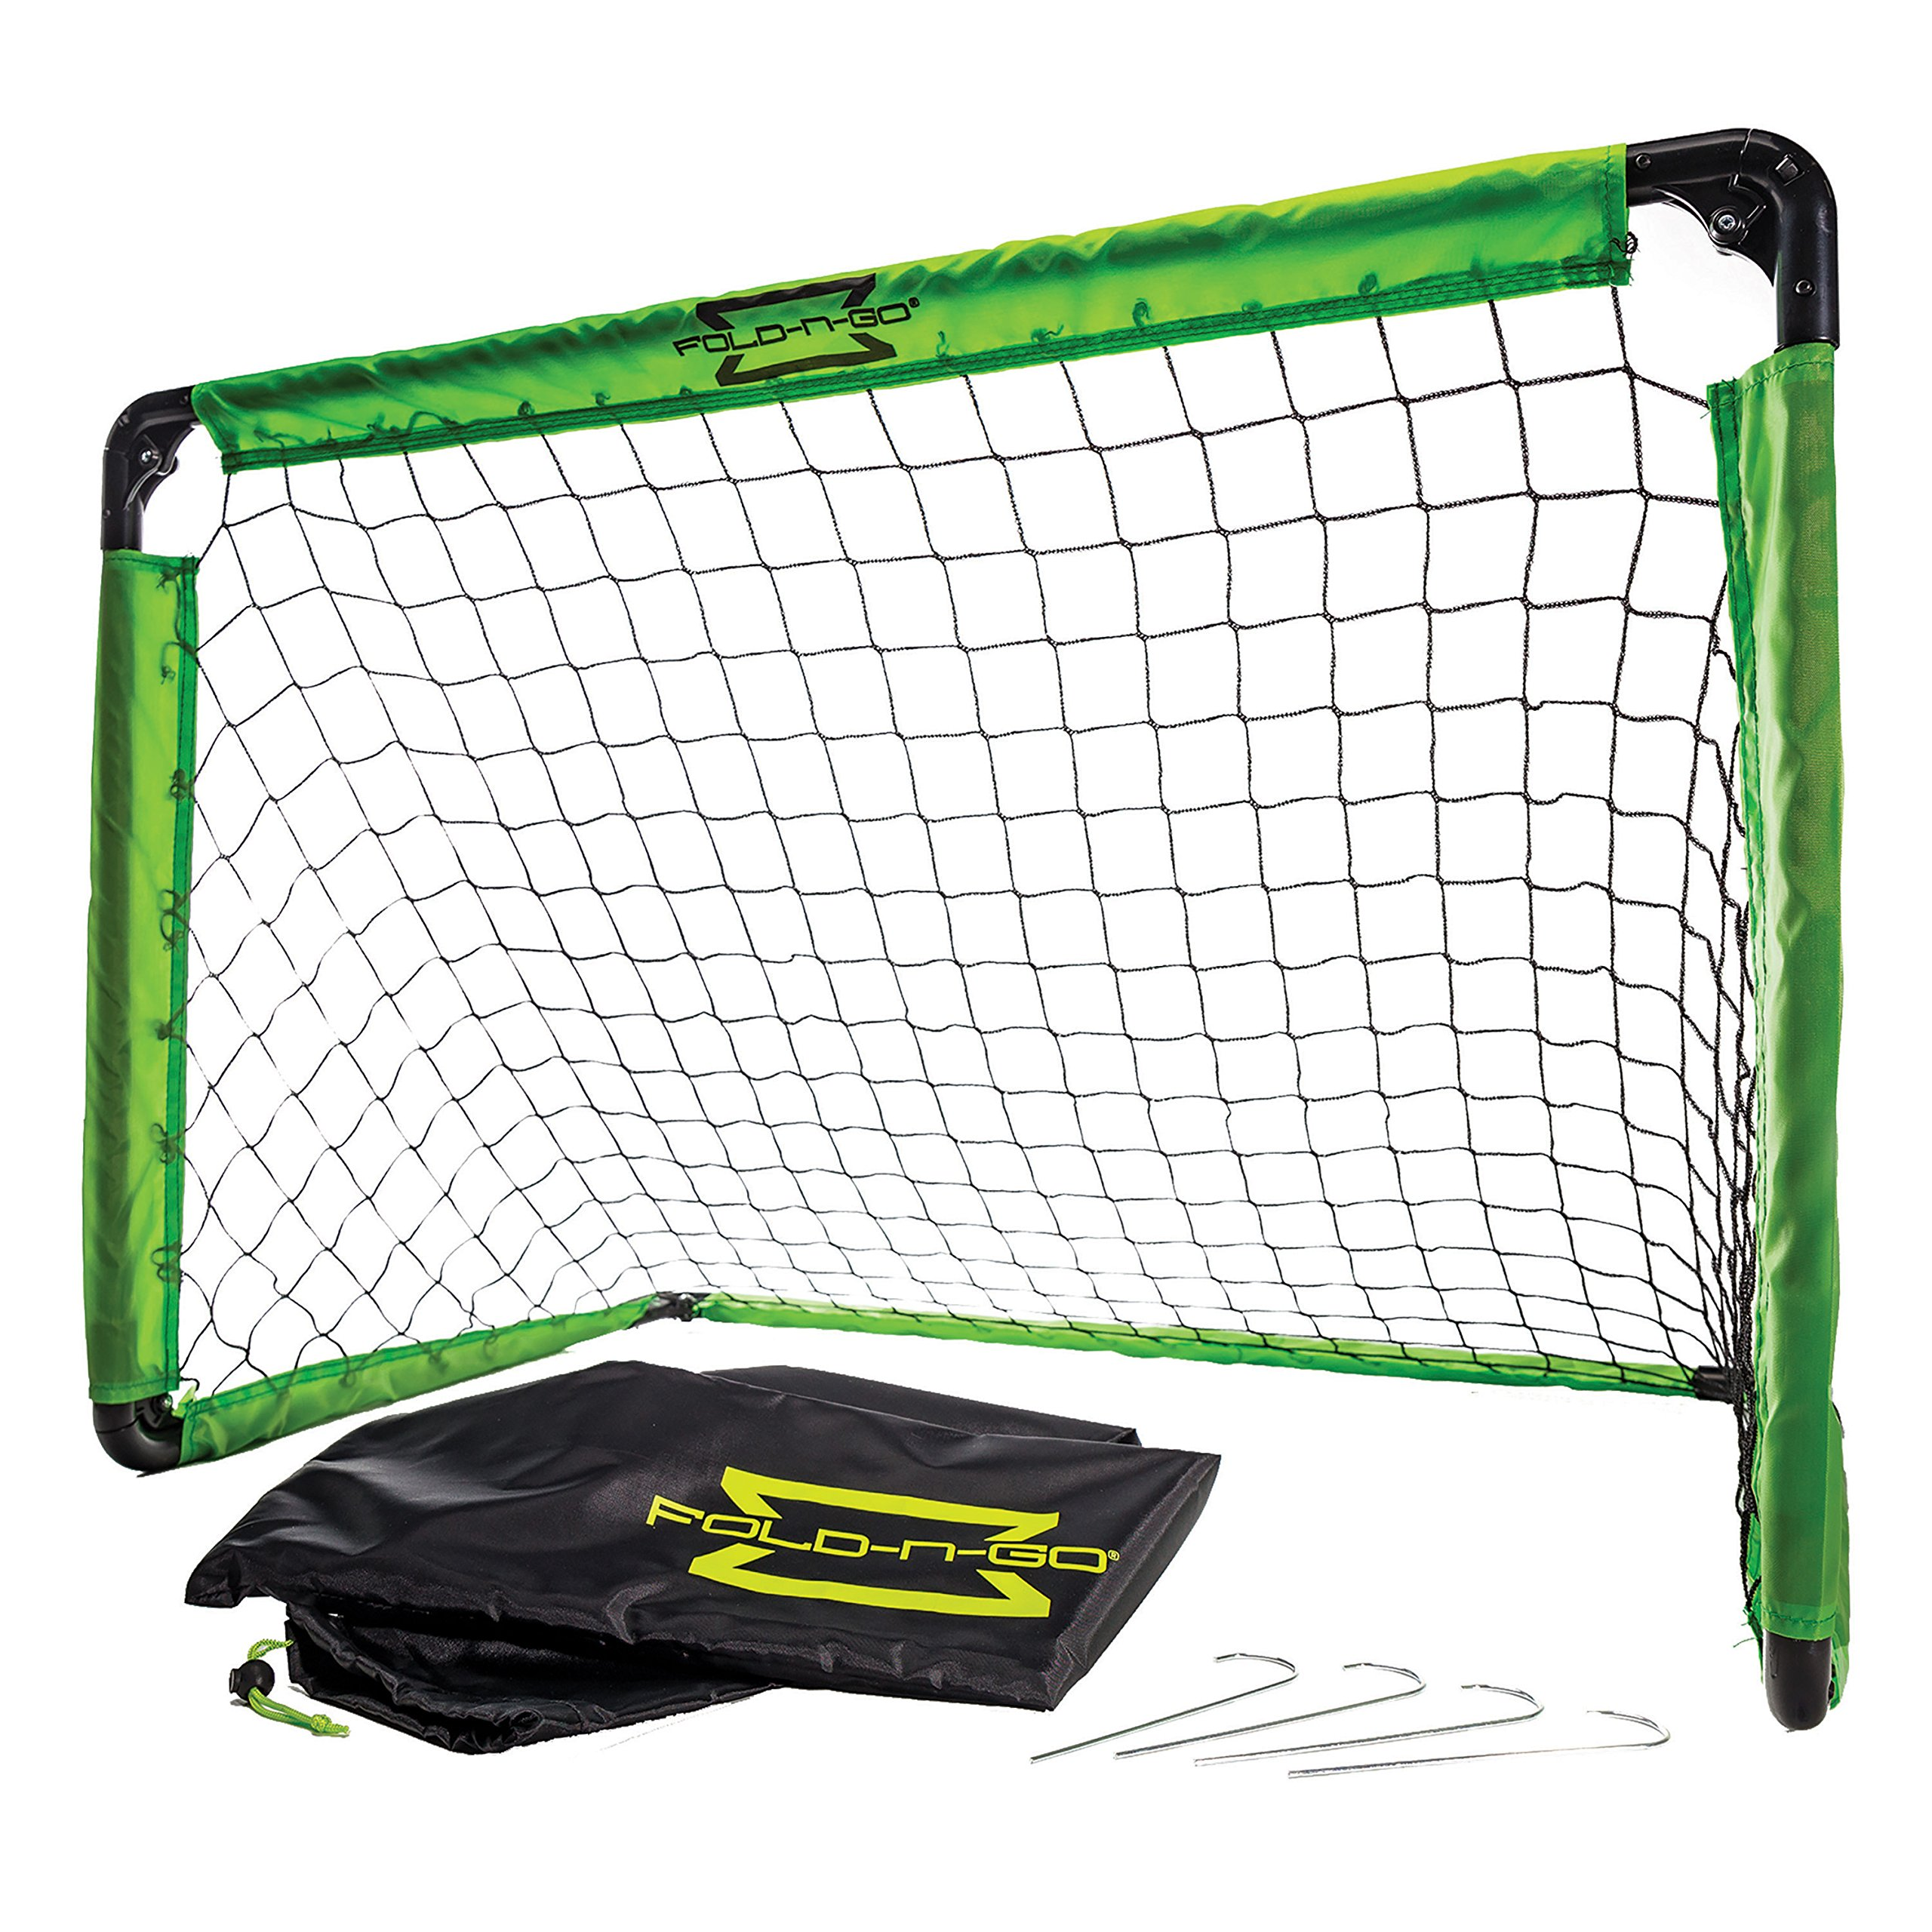 Franklin Sports Kids Soccer Goal with Carry Bag – 36 x 24 x 24 inches